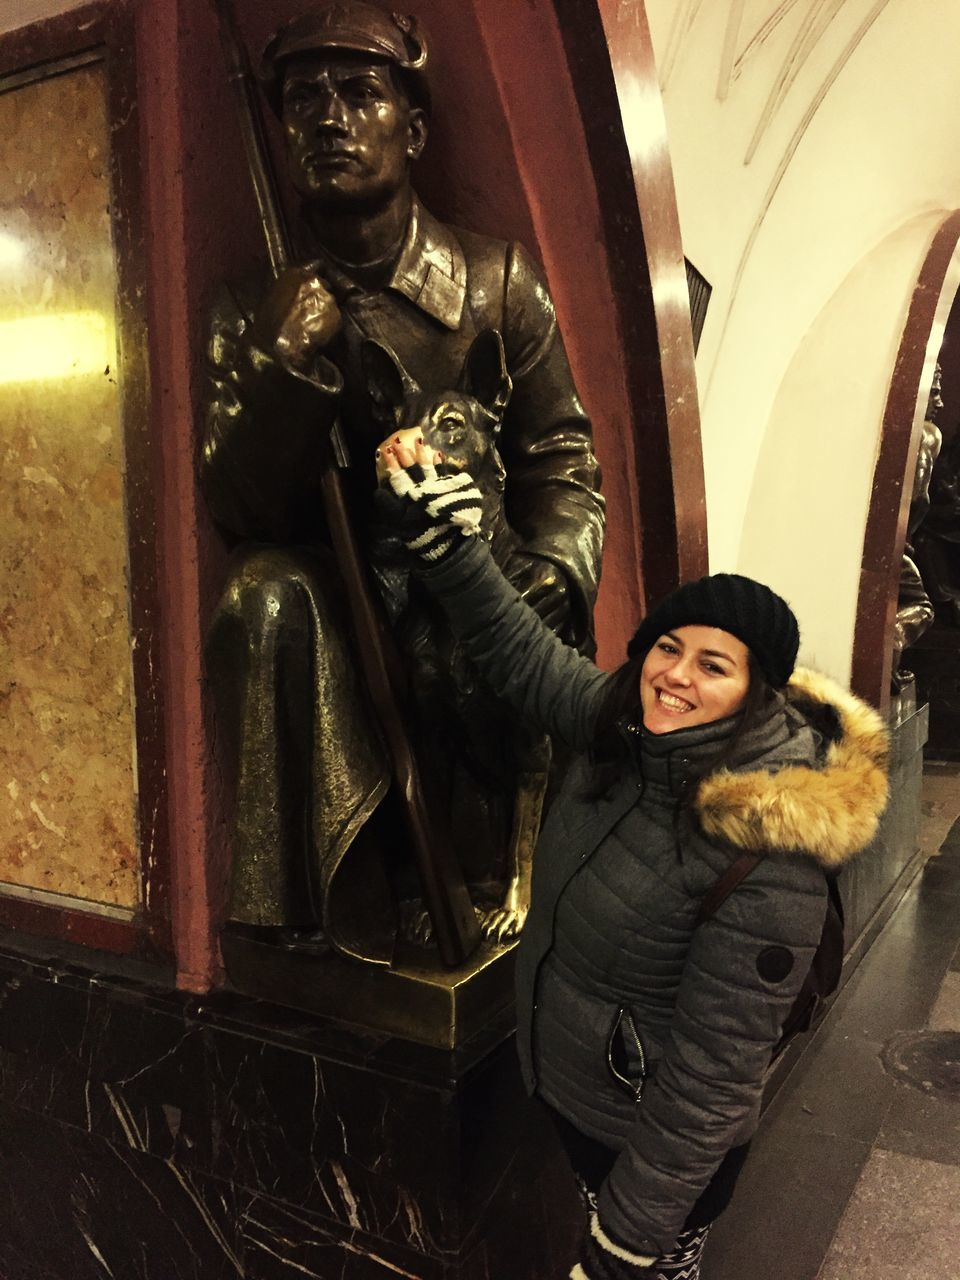 real people, smiling, statue, lifestyles, human representation, front view, happiness, one person, looking at camera, jacket, sculpture, indoors, portrait, leisure activity, young women, standing, young adult, night, warm clothing